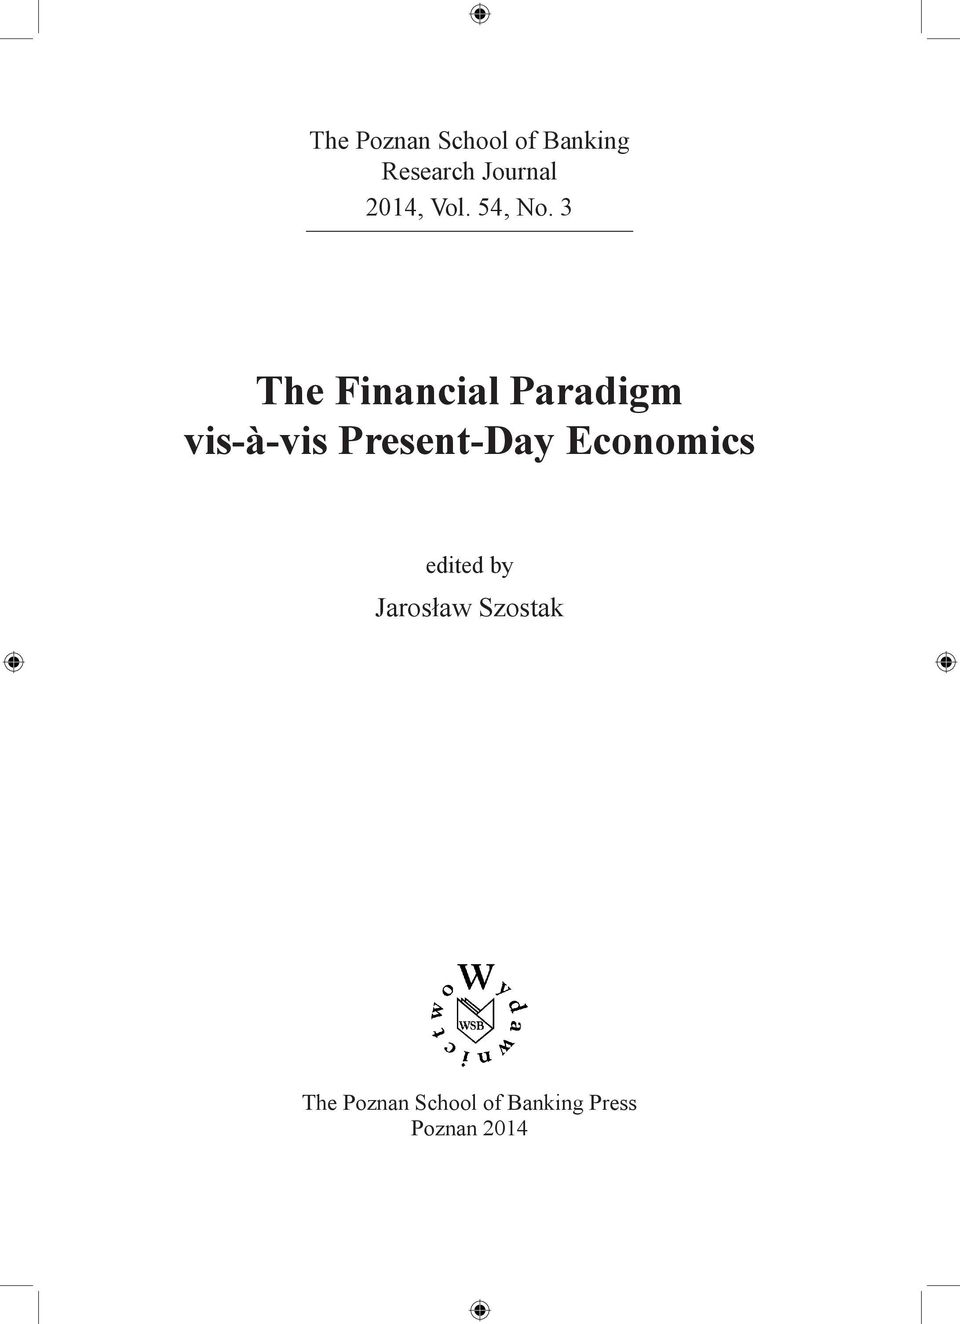 3 The Financial Paradigm vis-à-vis Present-Day